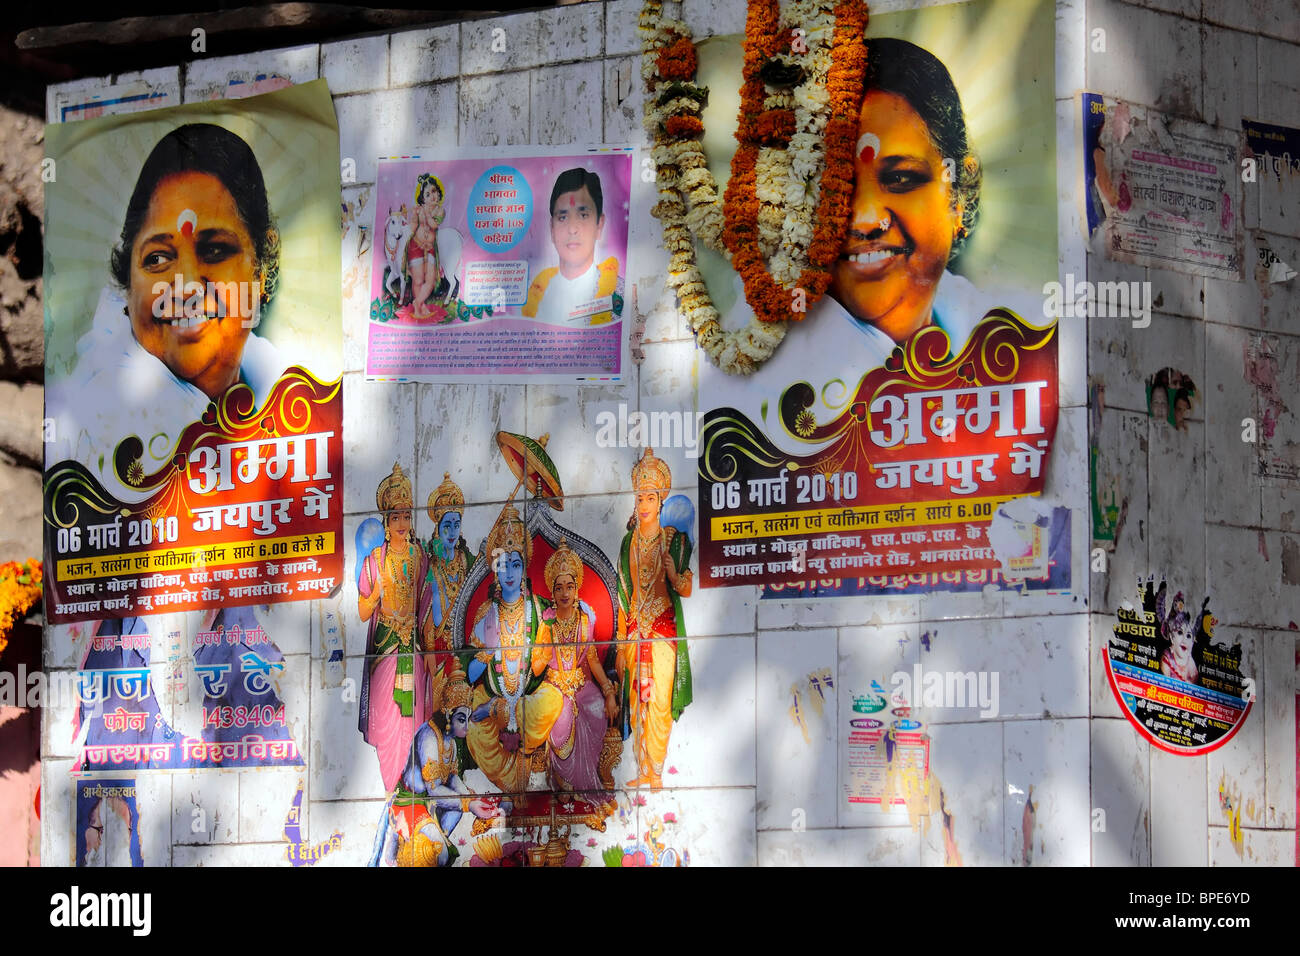 Political advertisement personality poster campaign Indian India - Stock Image